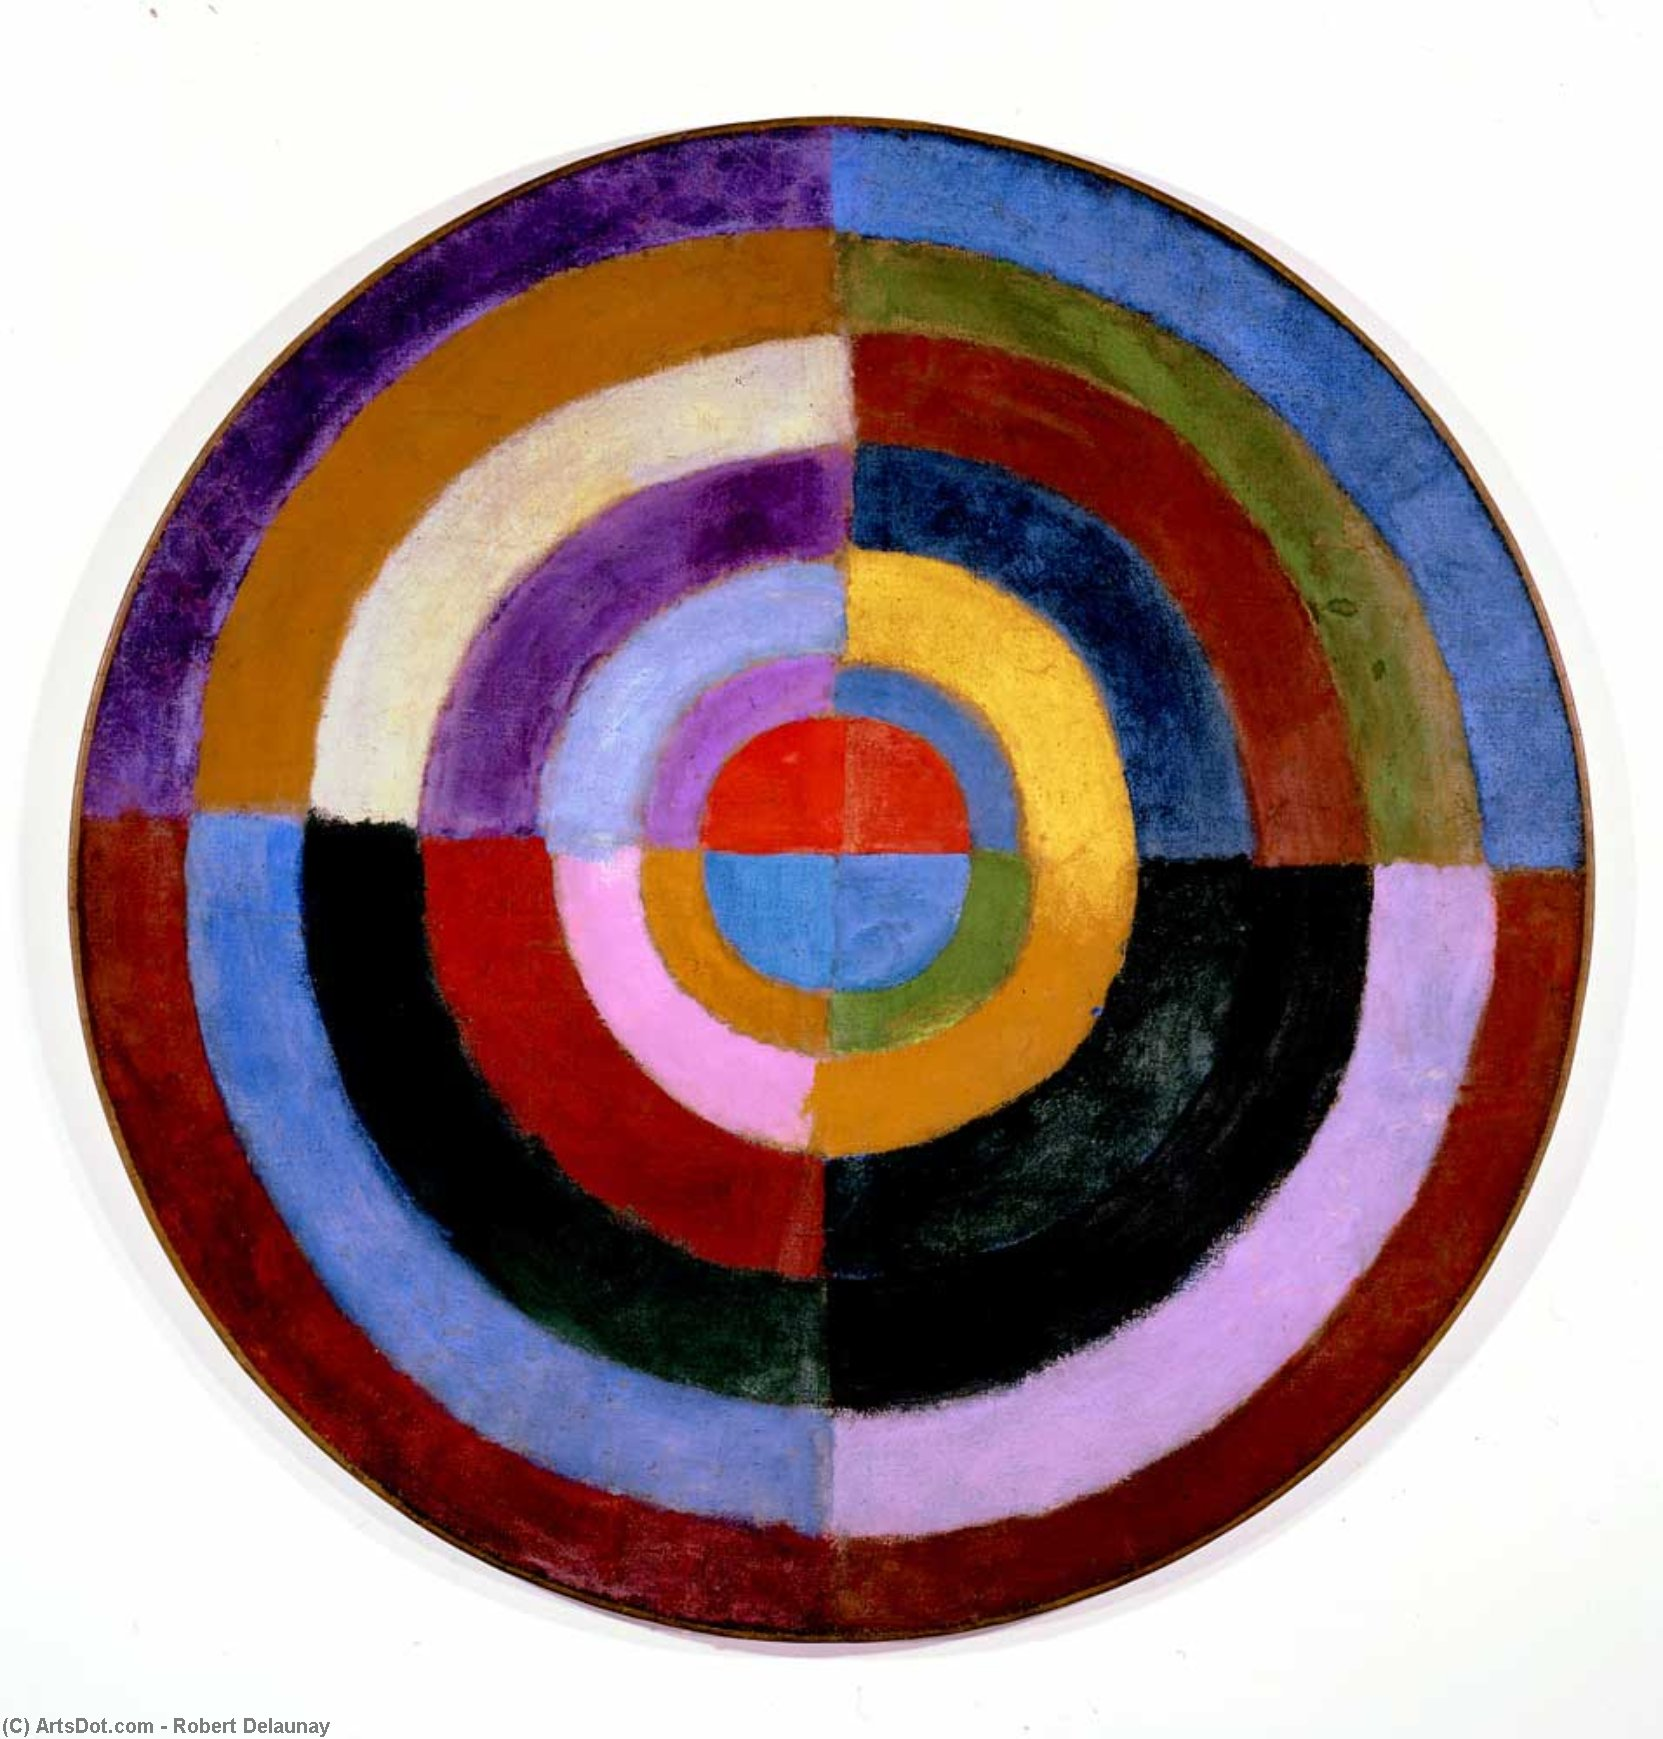 Premier Disque by Robert Delaunay (1885-1941, France) | ArtsDot.com